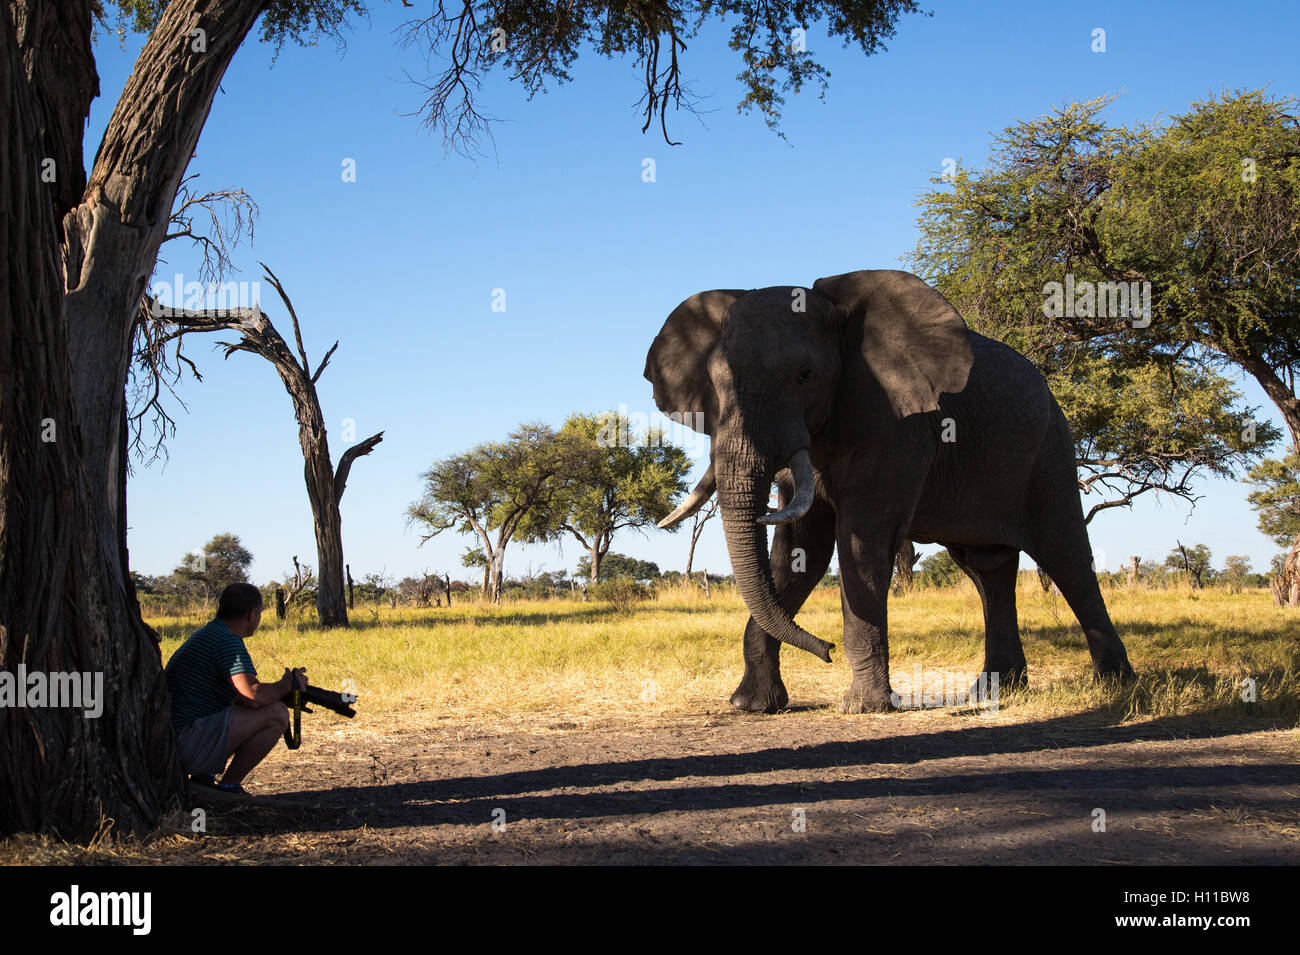 Closeup encounter between an elephant bull(Loxodonta africana) and a photographer in a camp site in Botswnana - Stock Image